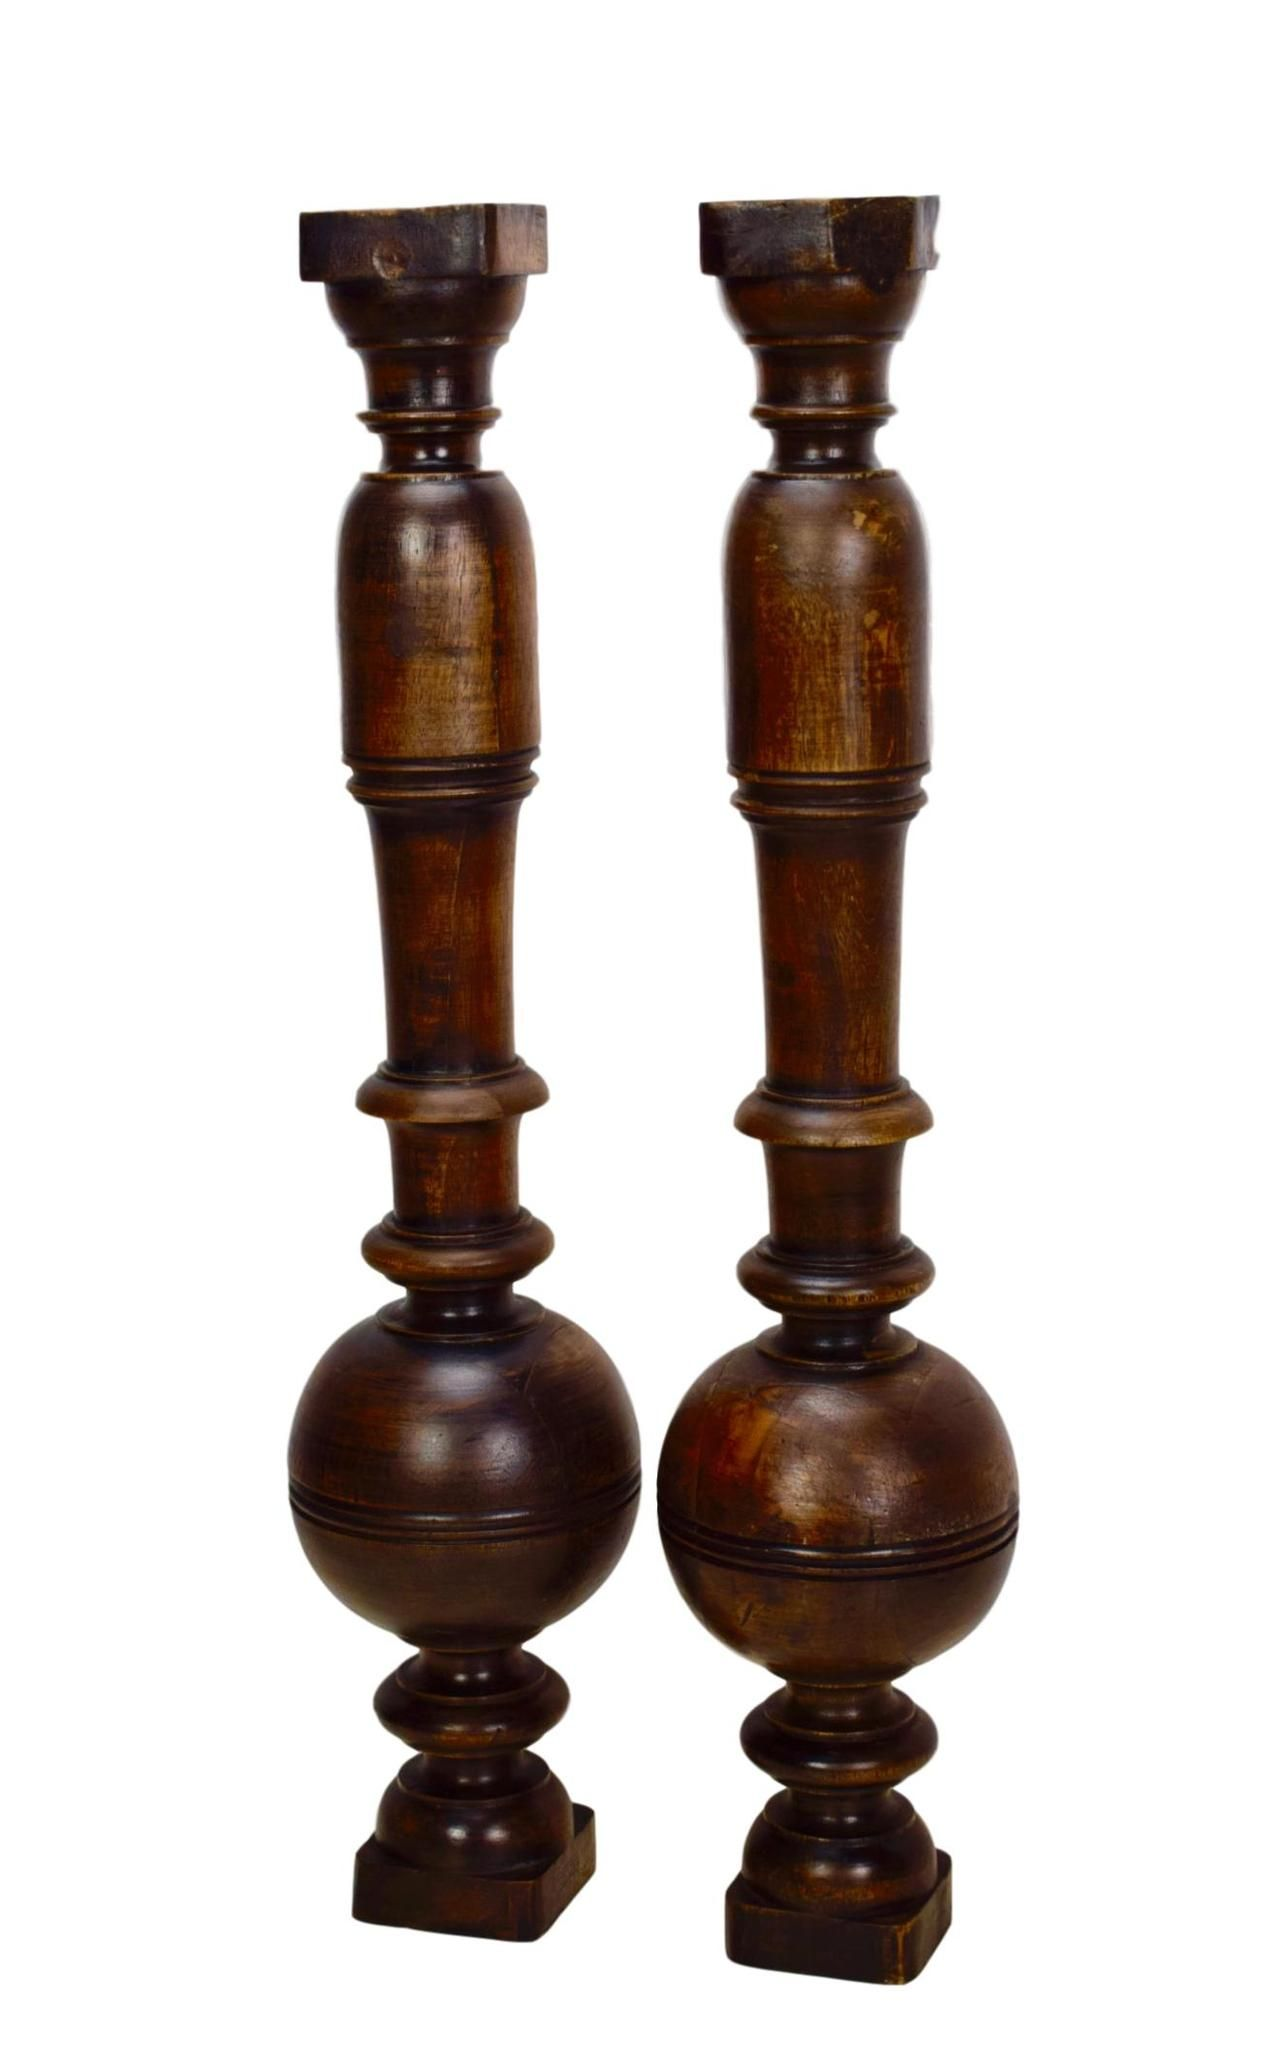 Antique Architectural Pair Carved Wood Louis XIII Trim Posts Pillars